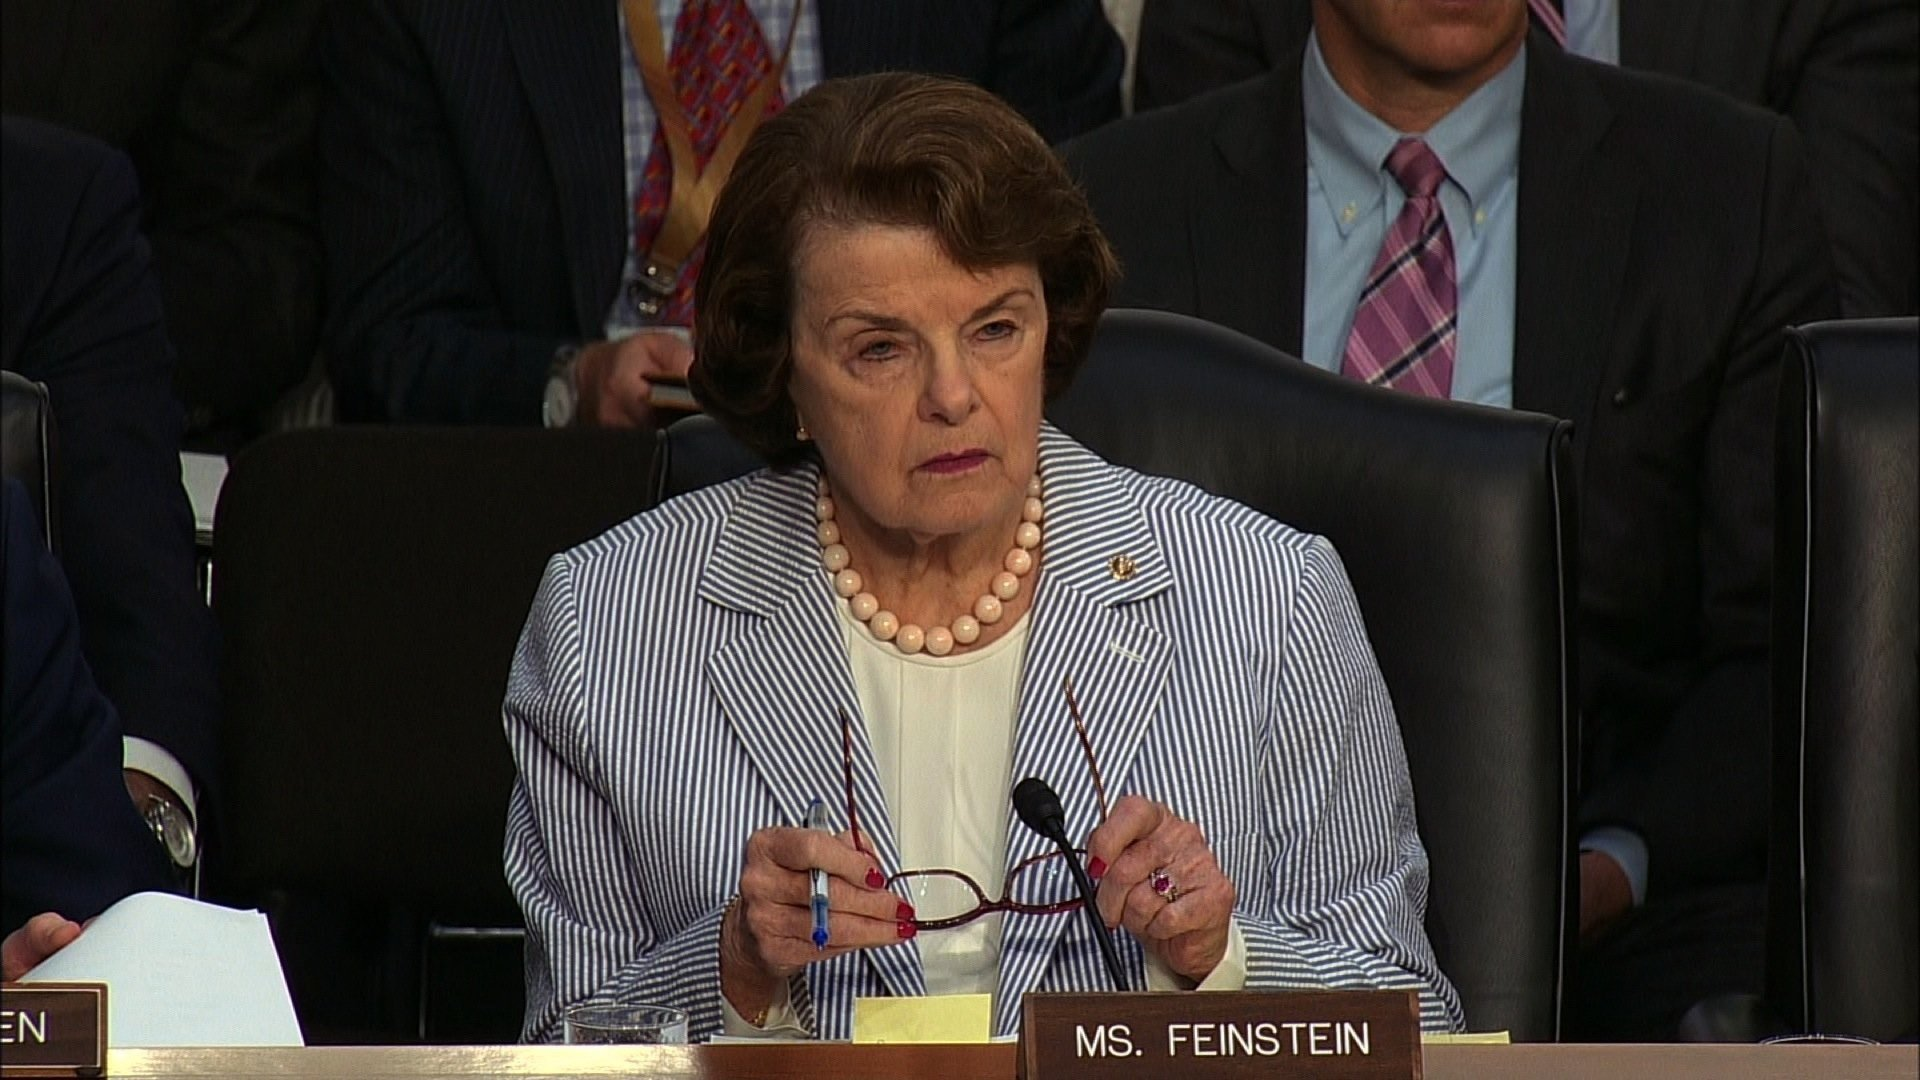 Senator Dianne Feinstein interviews James Comey during a congressional hearing on Thursday, June 8, 2017.